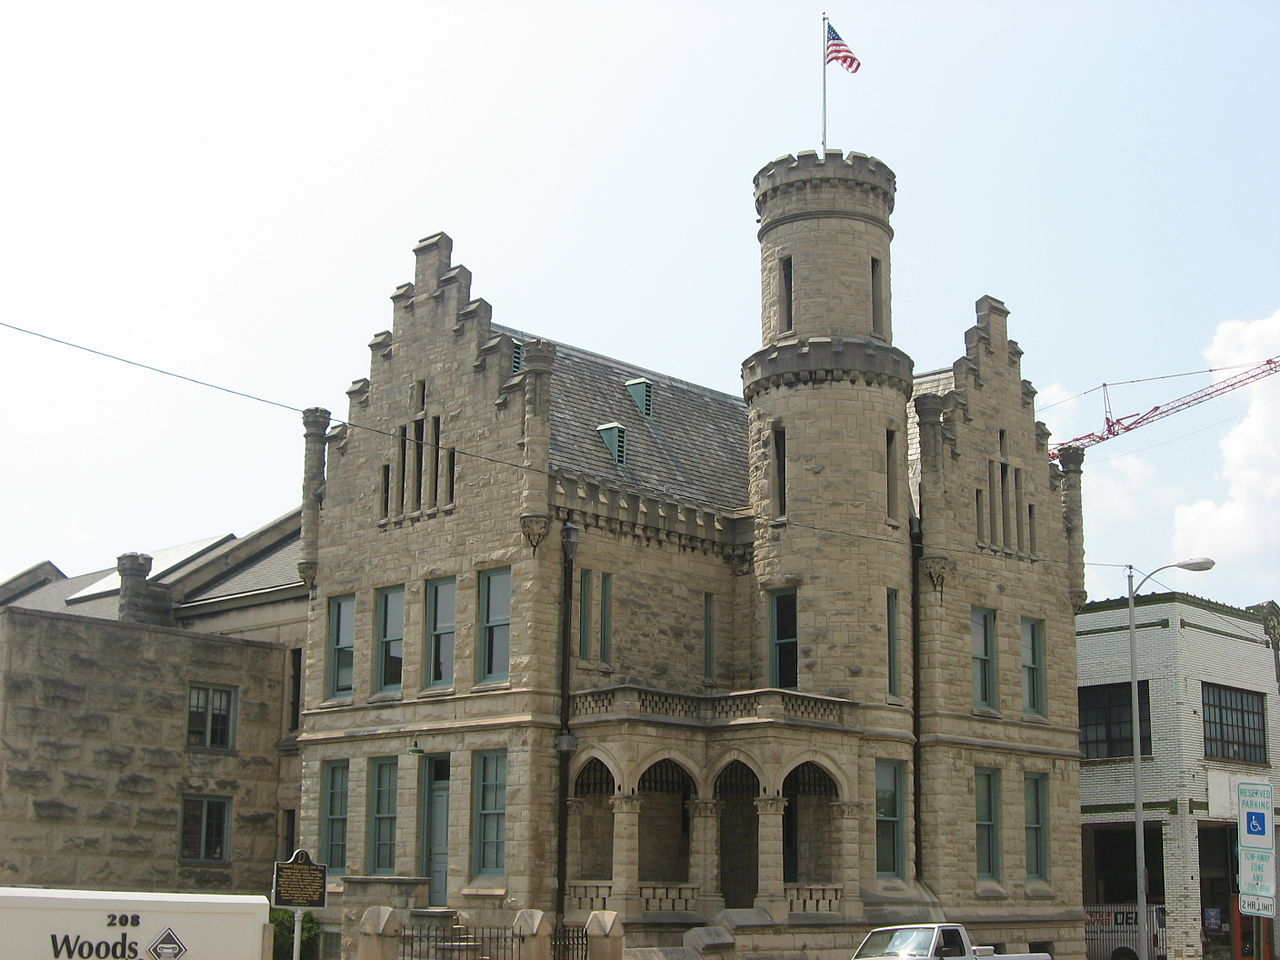 The Old Vanderburgh County Sheriff's Residence and Jail was built in 1891.